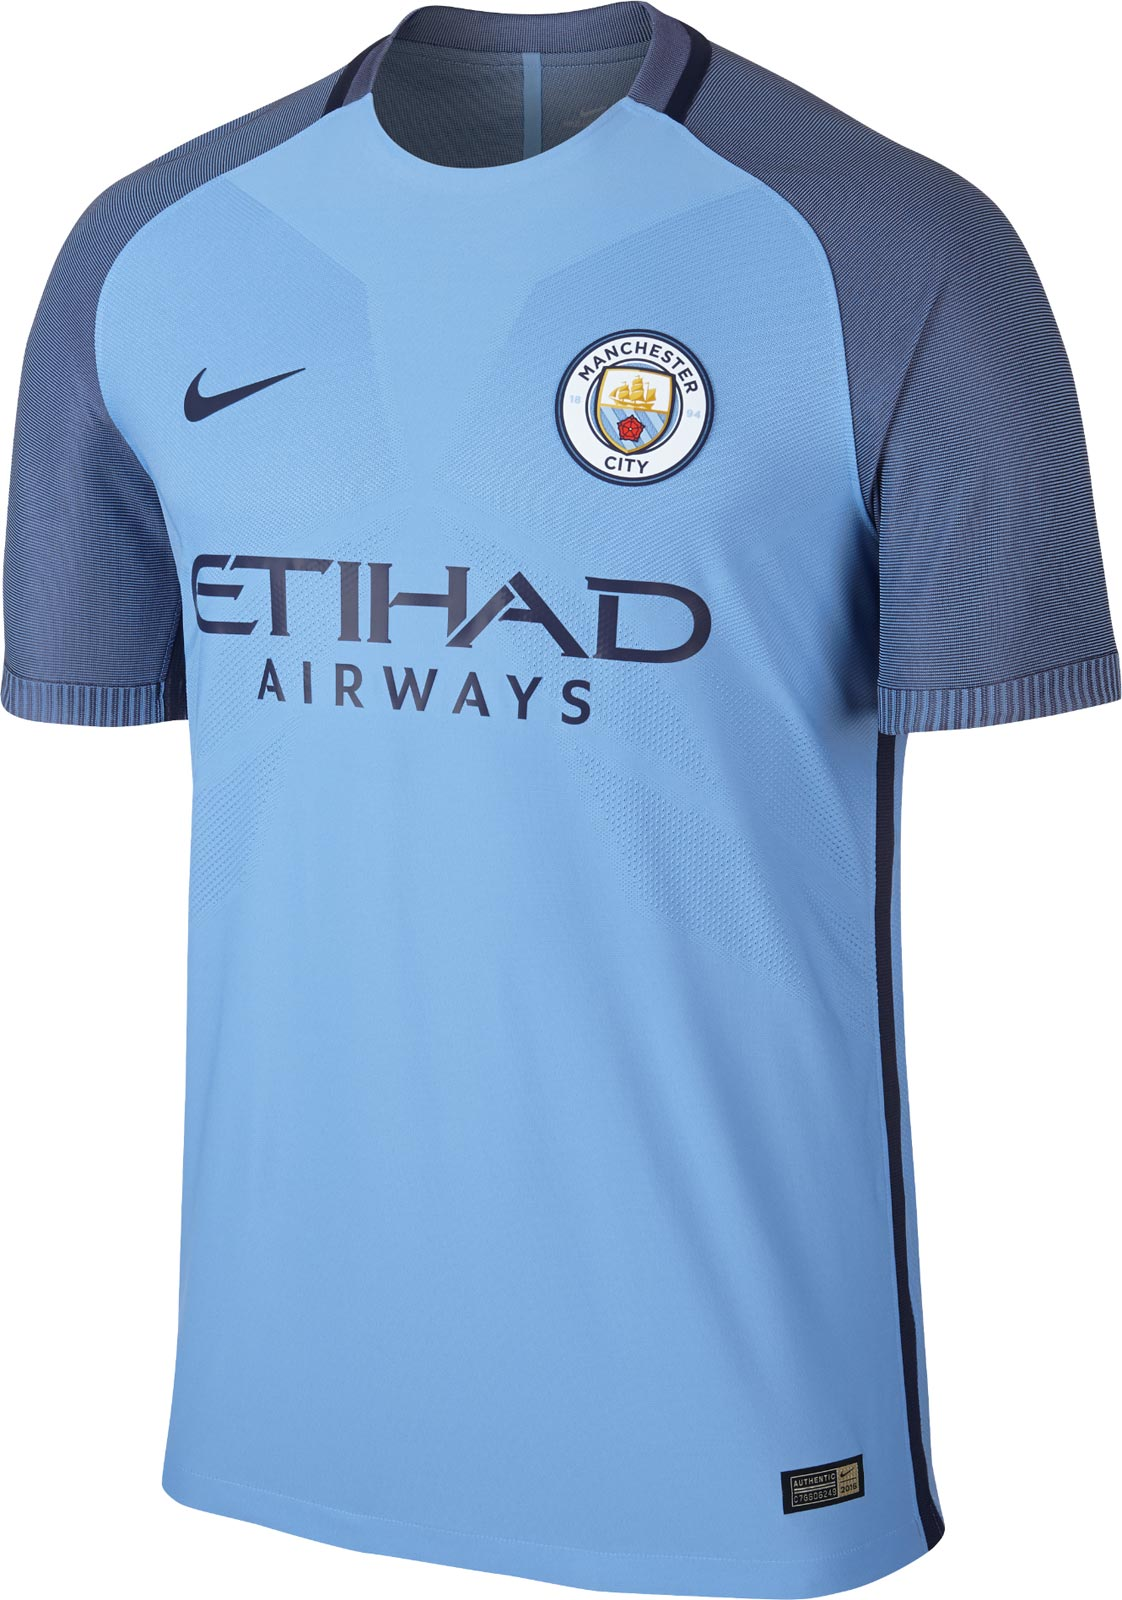 Manchester City   Home Kit This Is The New Nike Manchester City